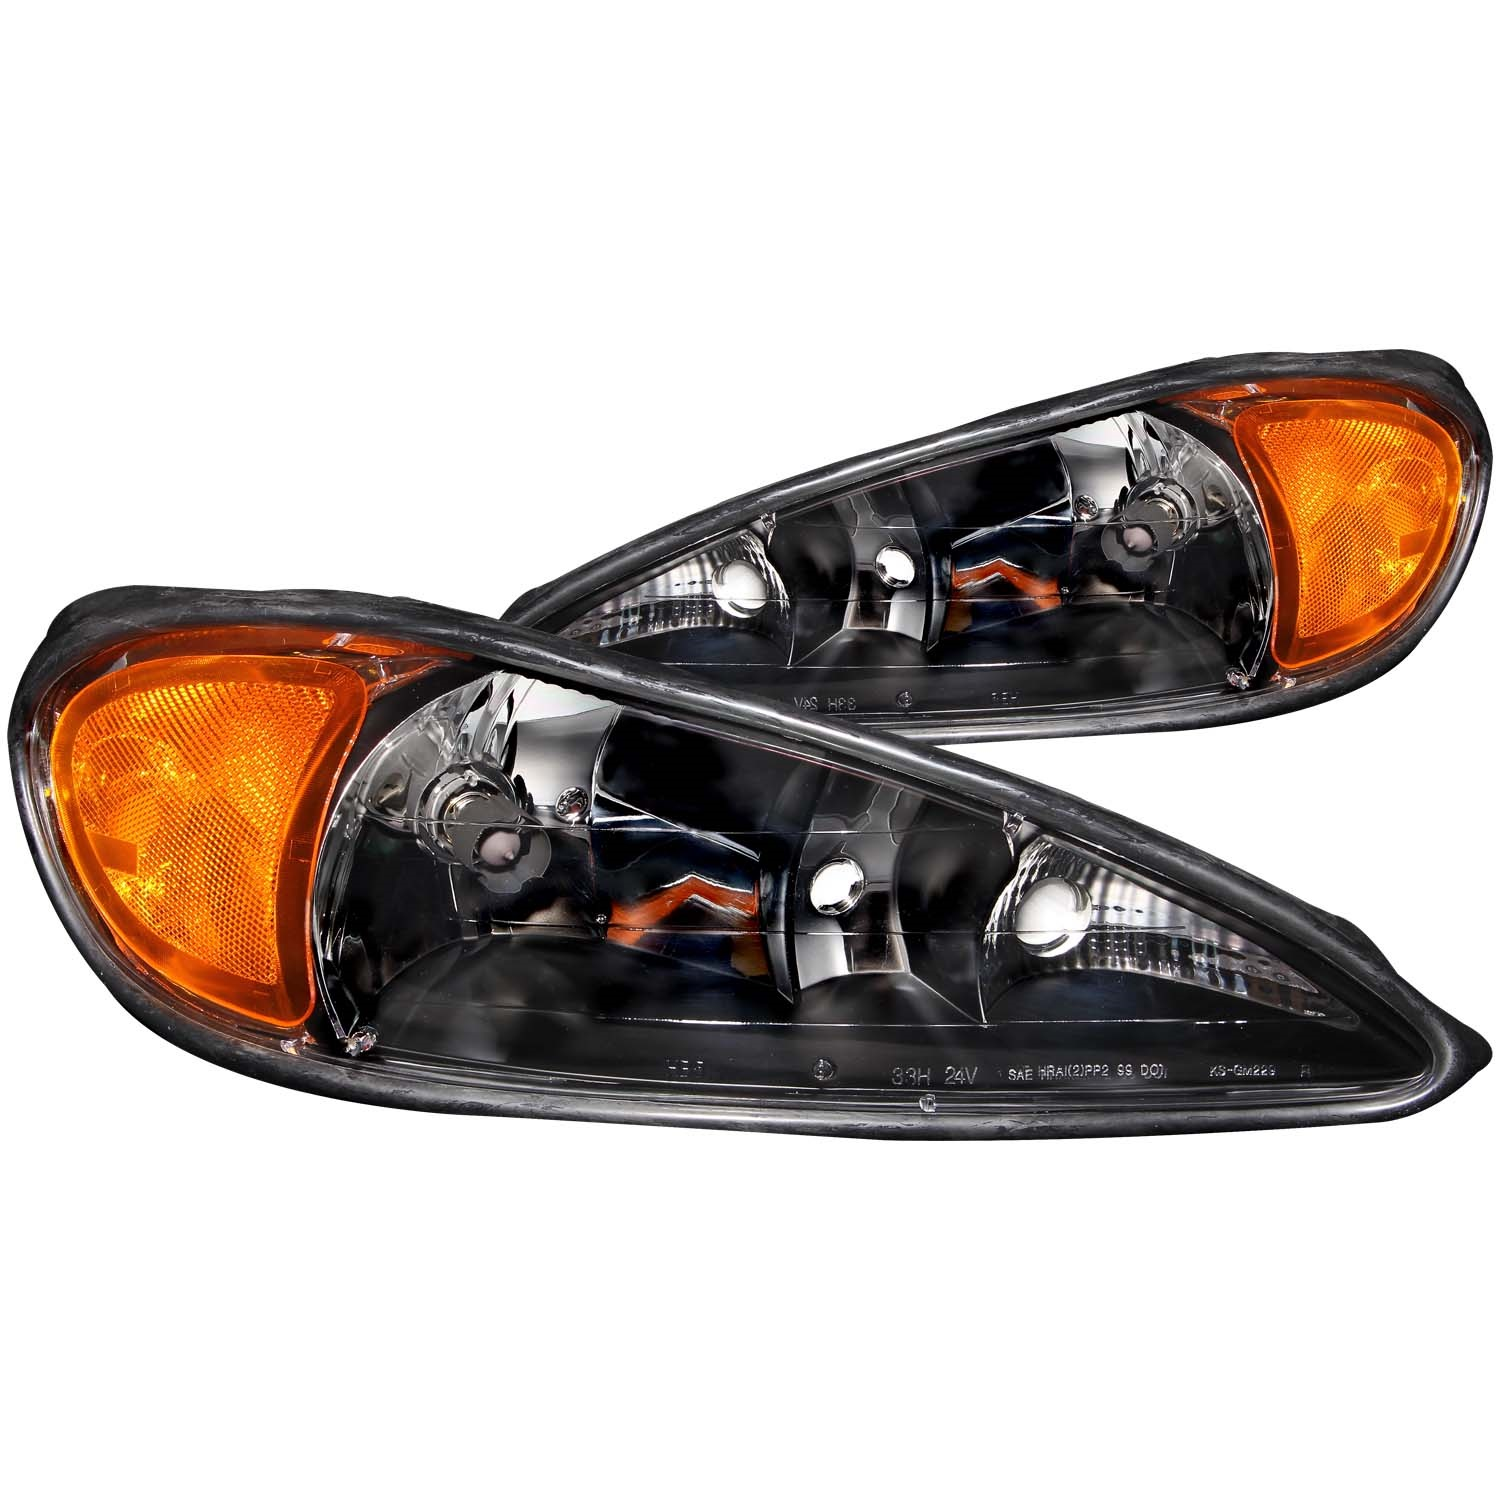 Anzo USA 121116 Crystal Headlight Set Fits 99-05 Grand Am